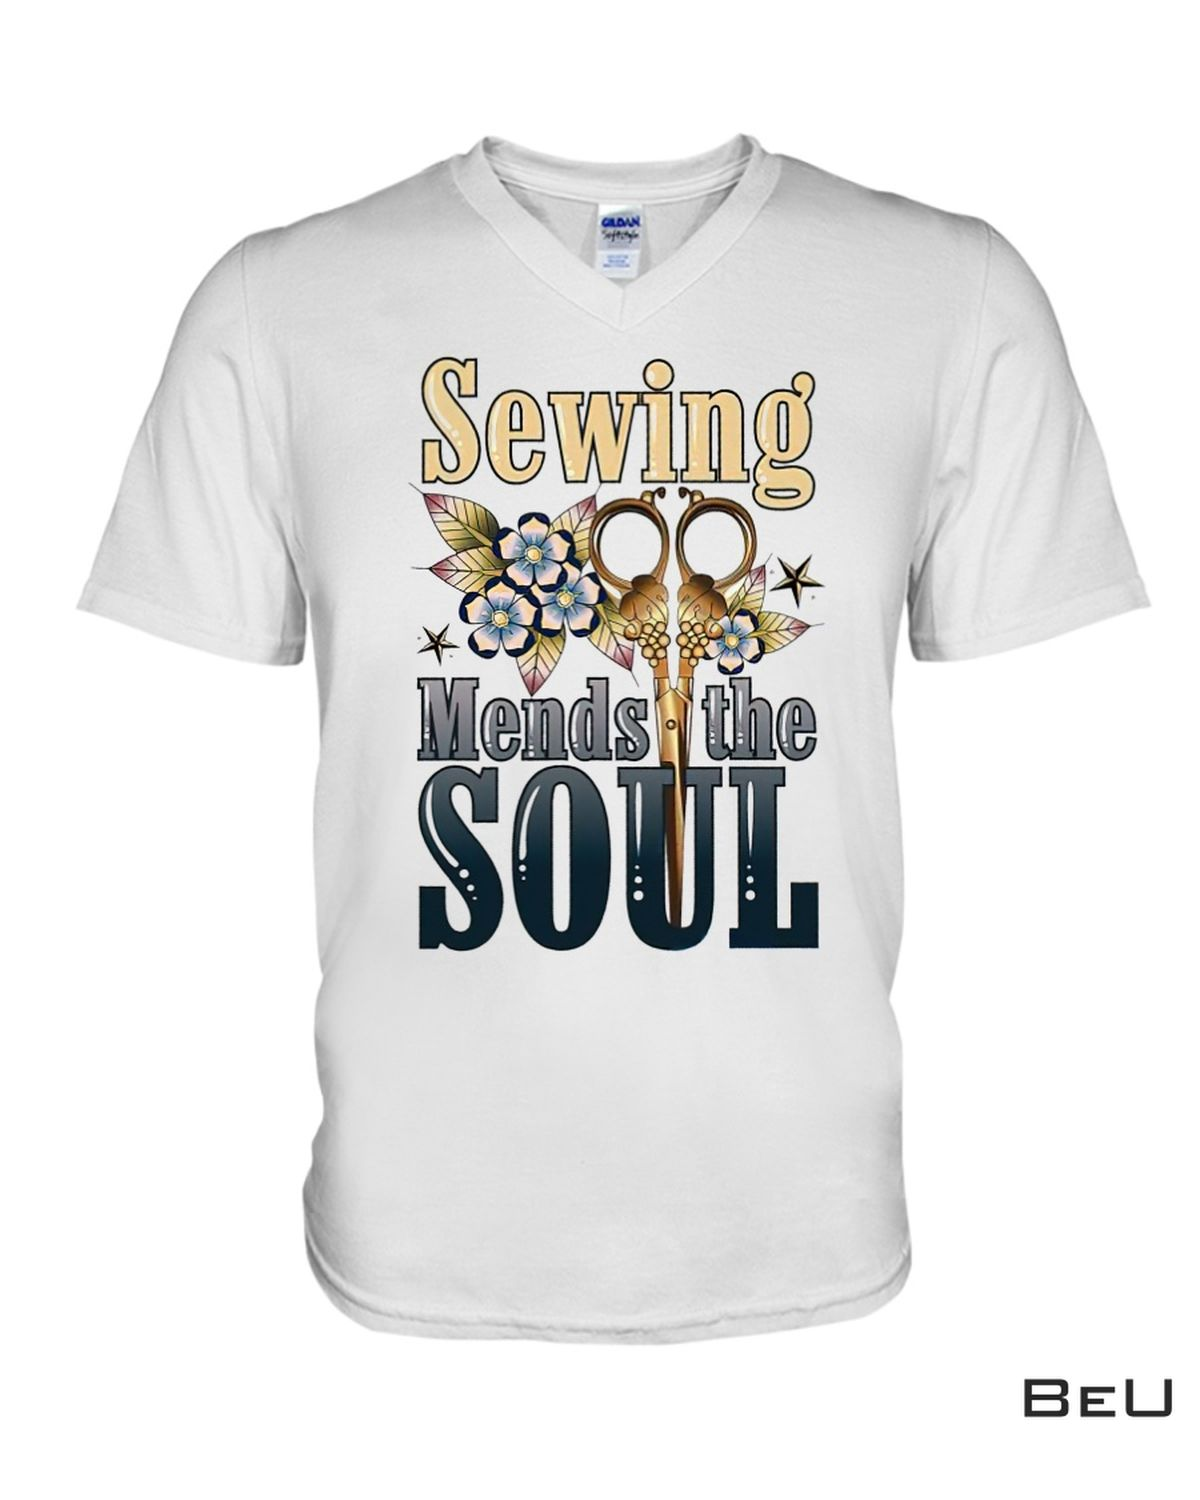 POD Sewing Mends The Soul Shirt, Hoodie, Tank Top